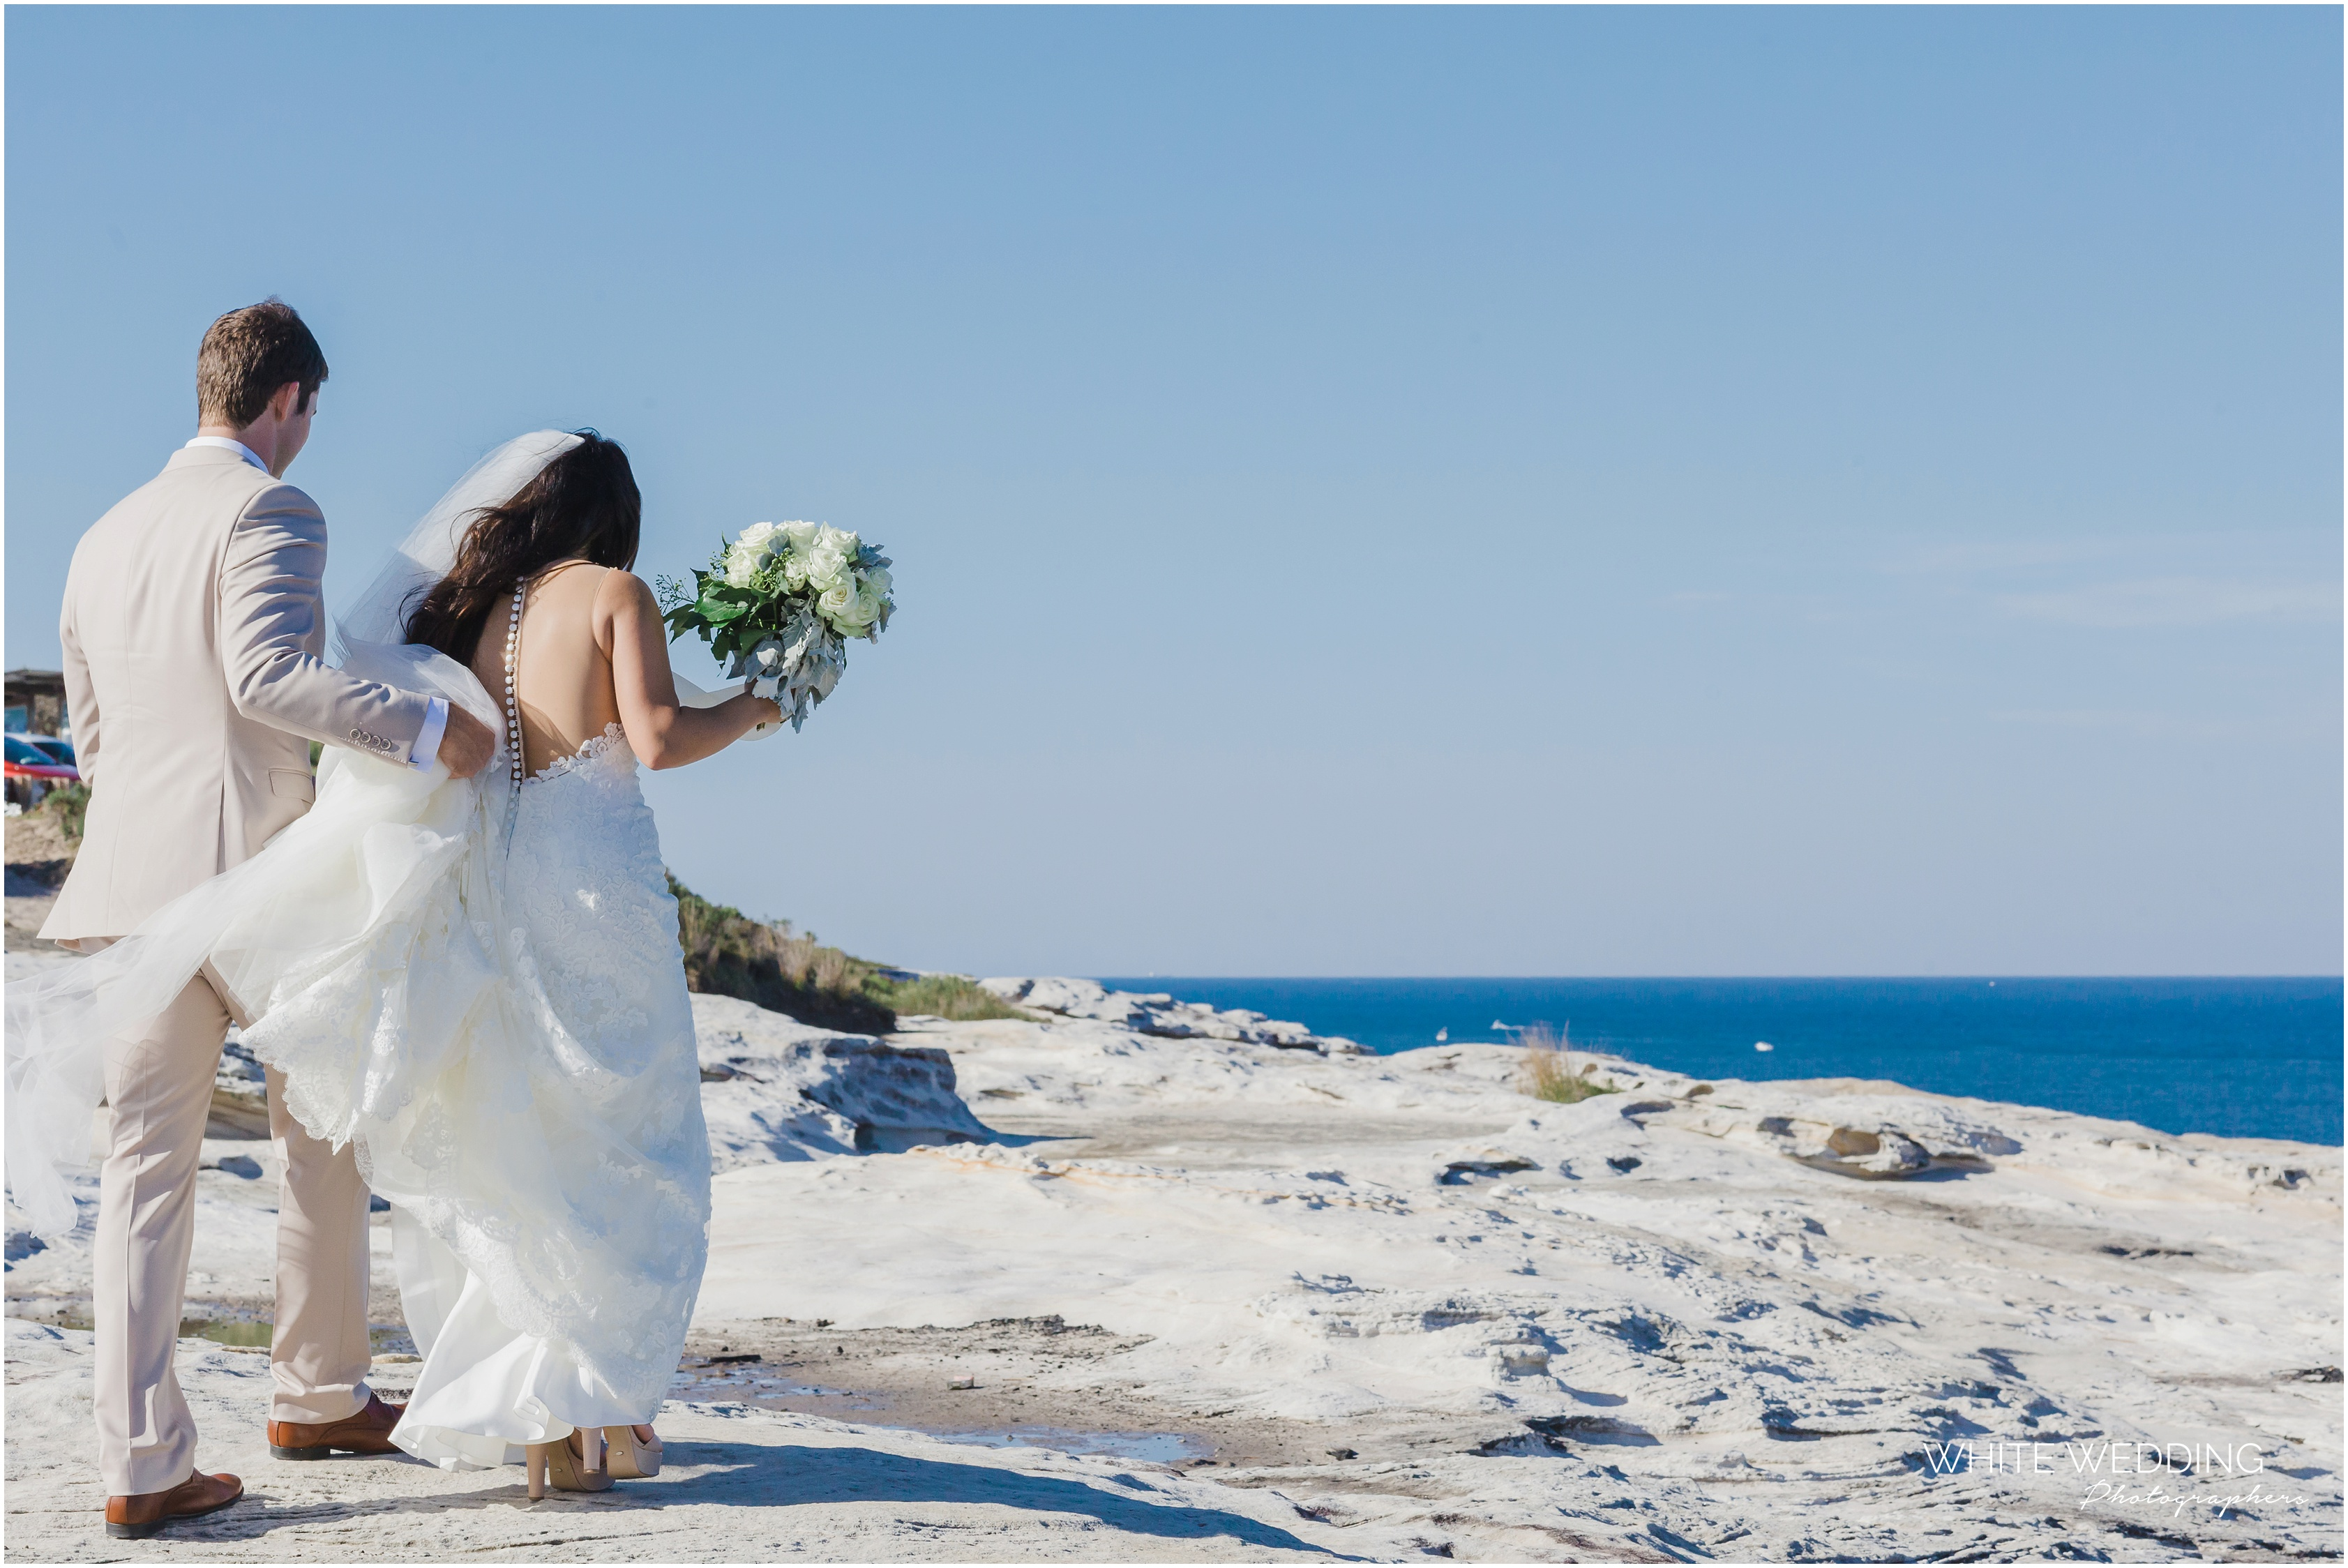 Wanda Surf Life Saving Club Cronulla Wedding Photographer | White ...